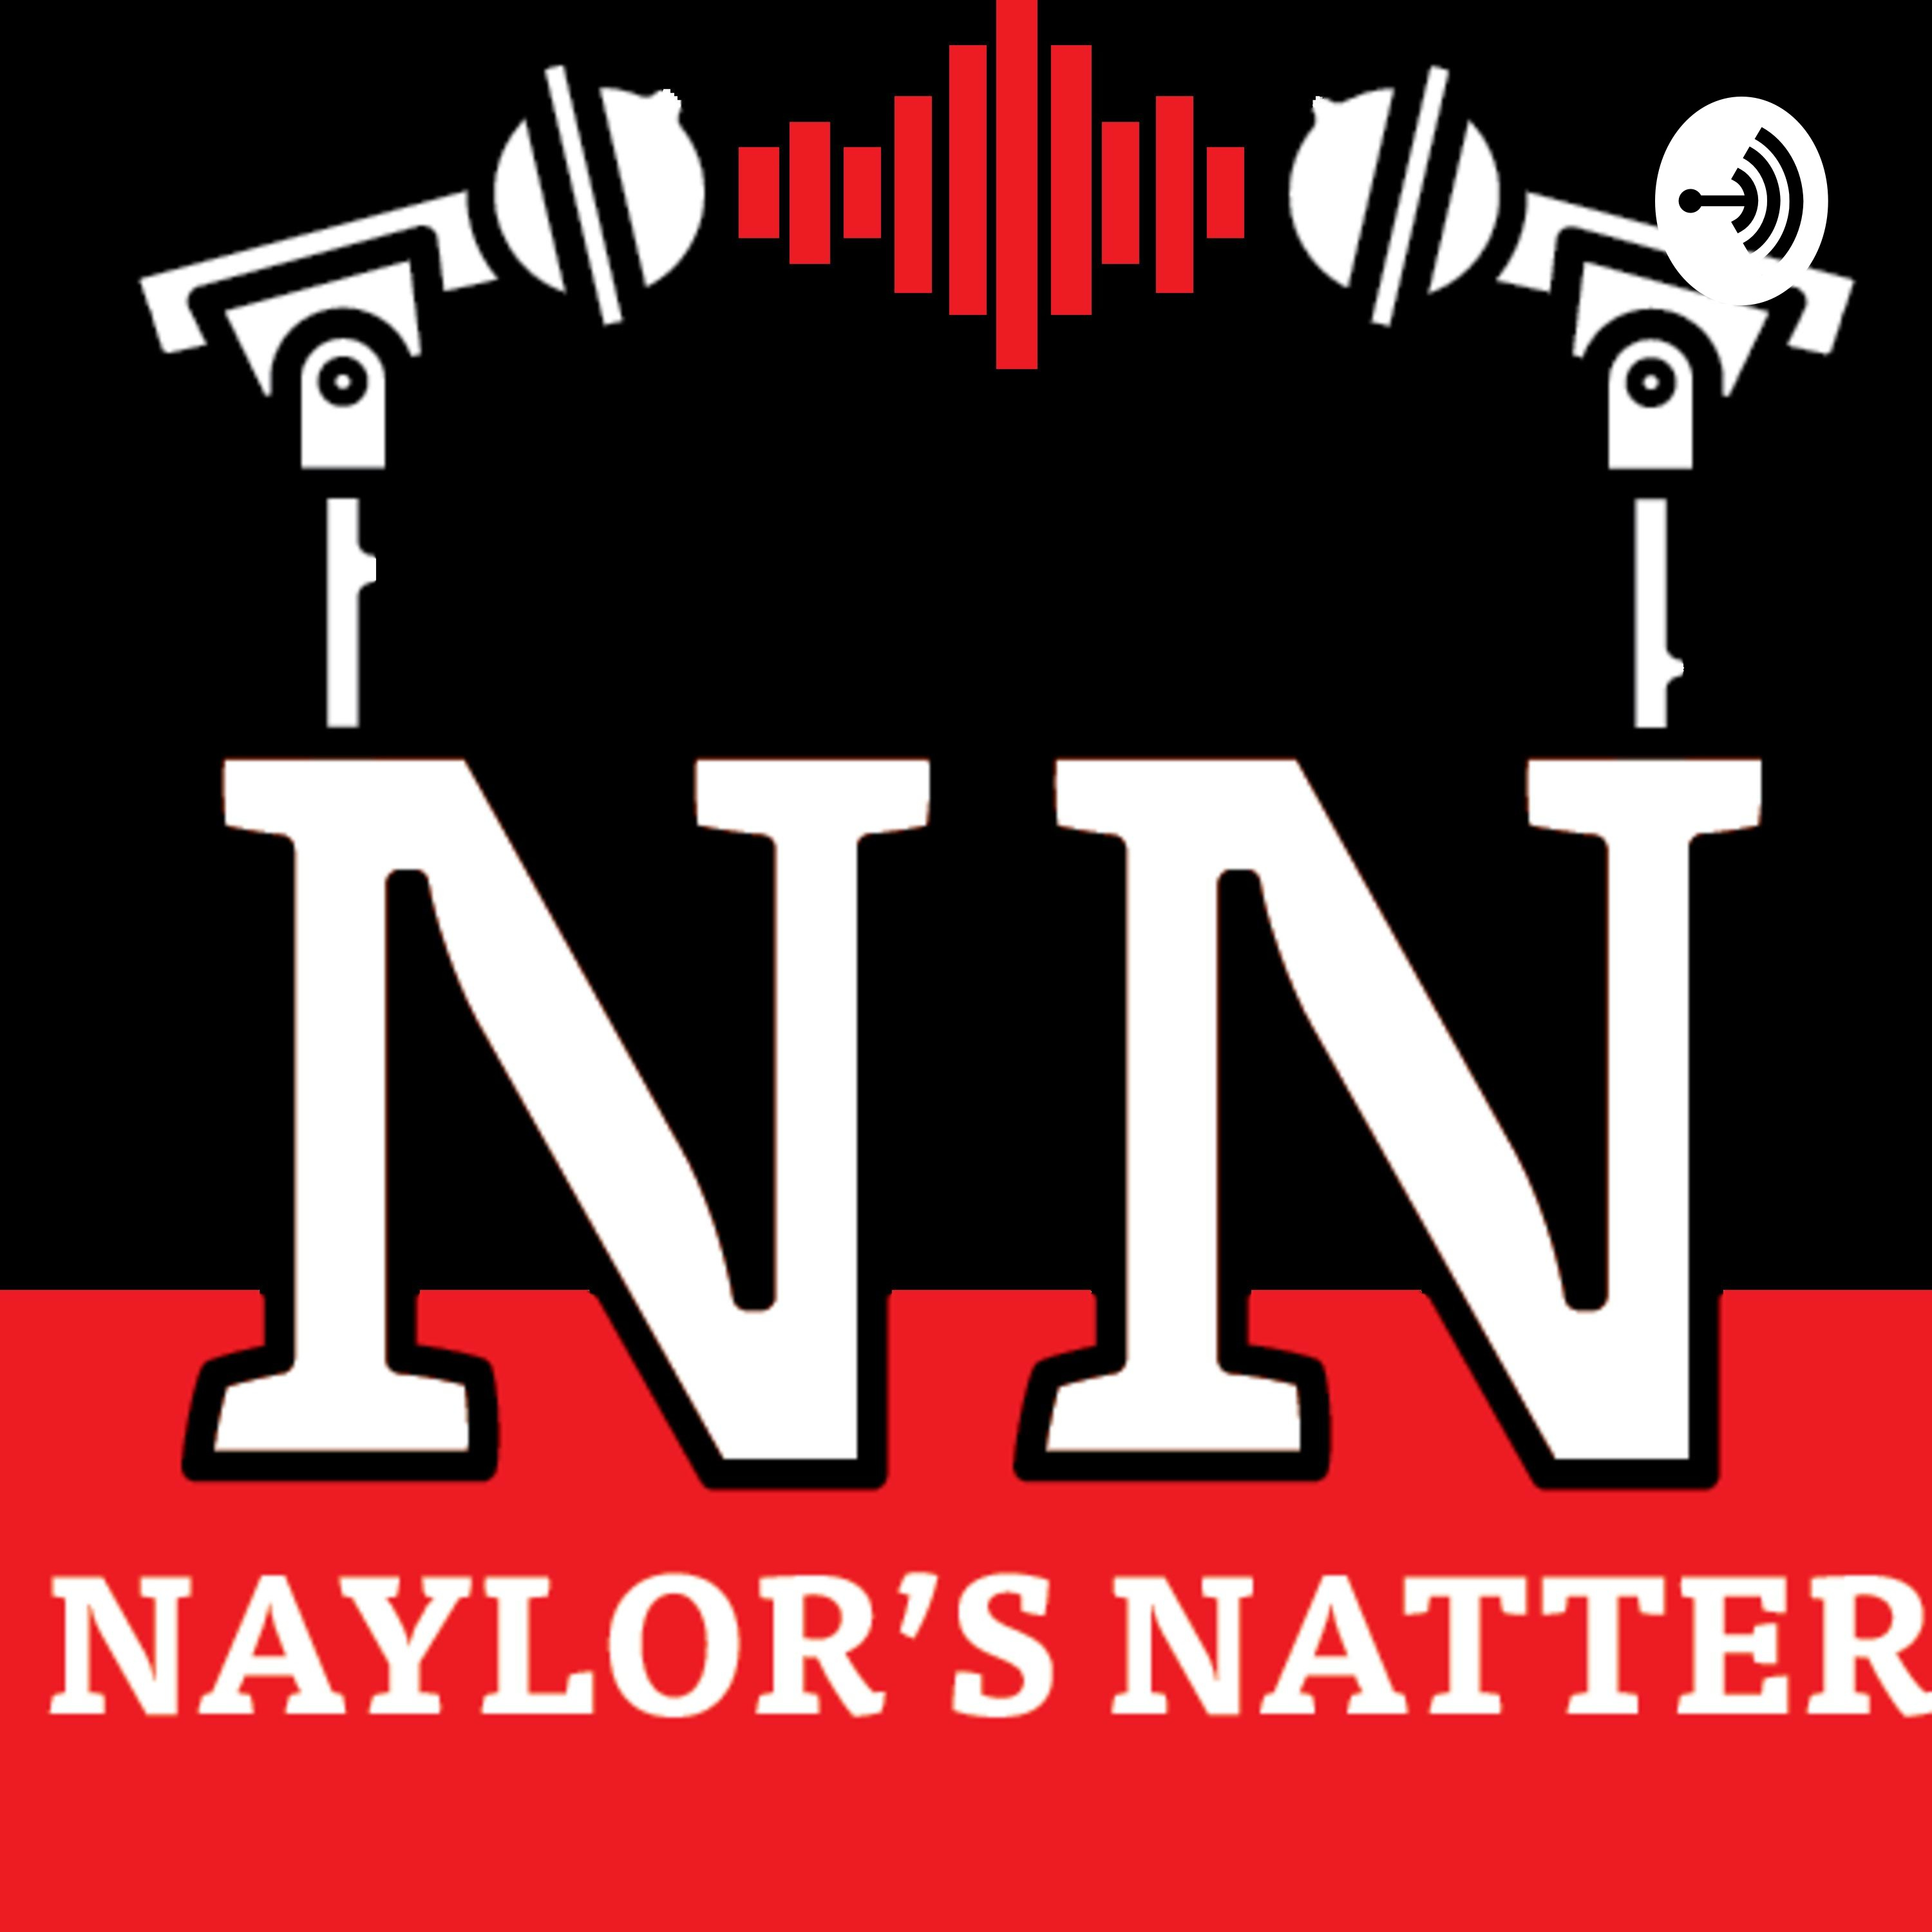 Naylor's Natter in association with TDT